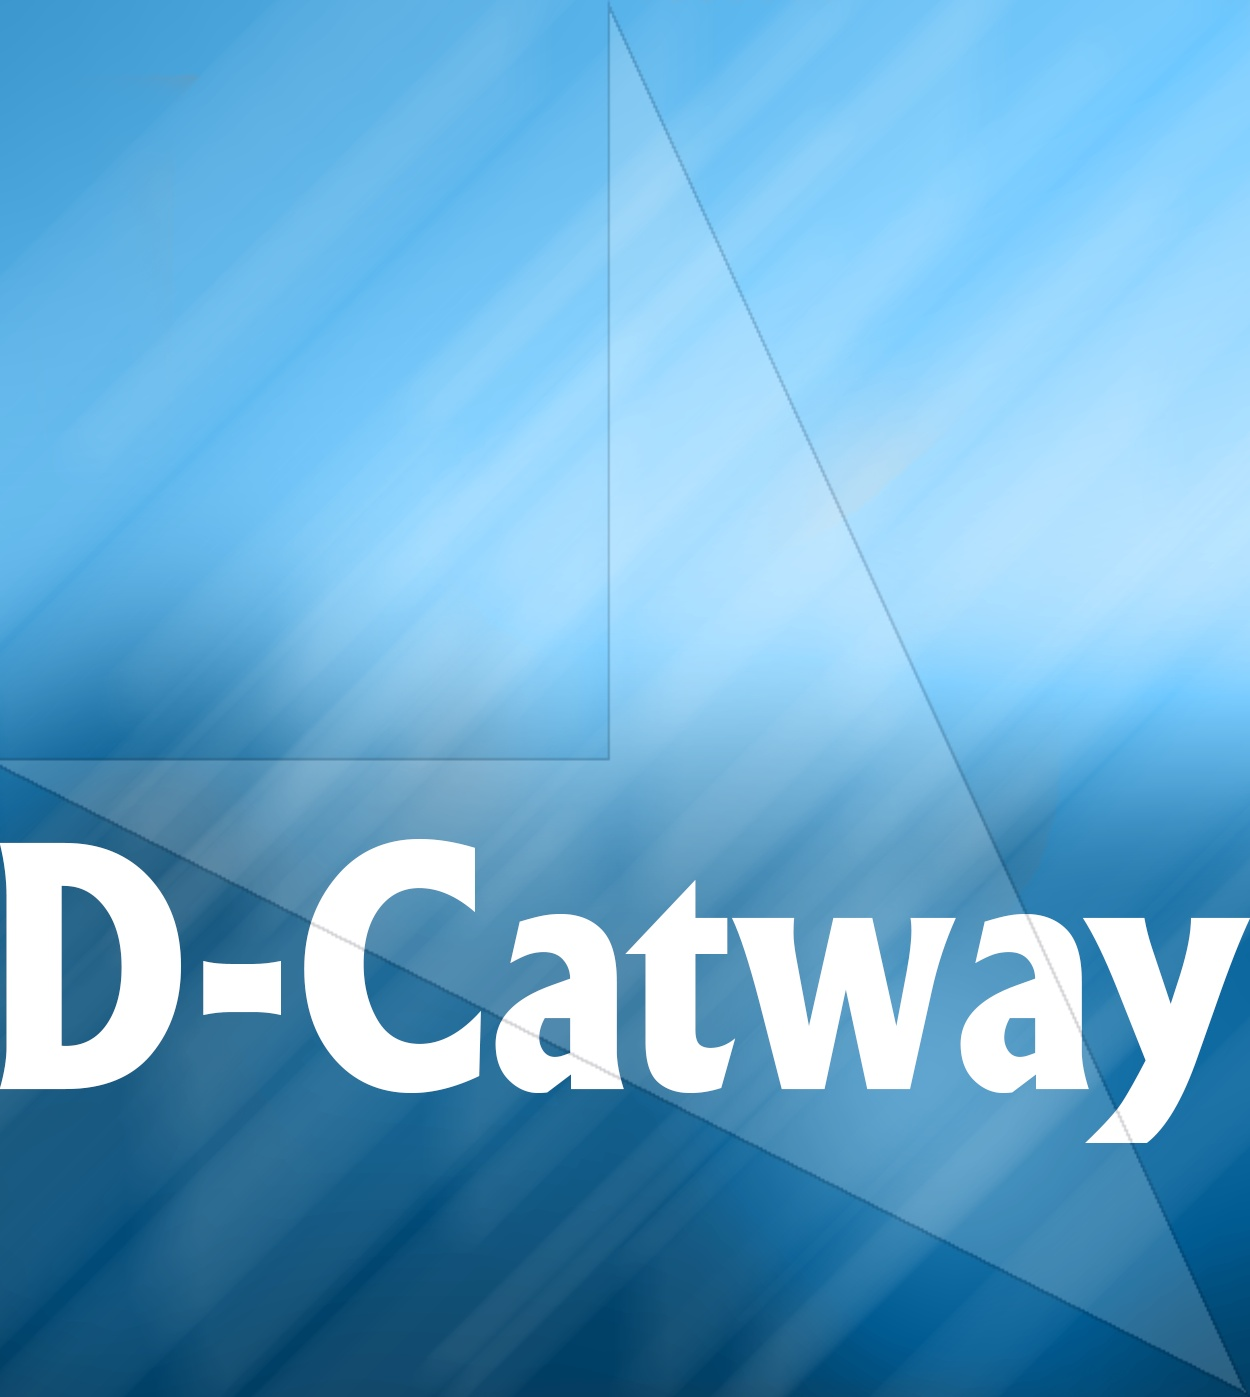 D-catway : Formation sur Excel, Access, Word...